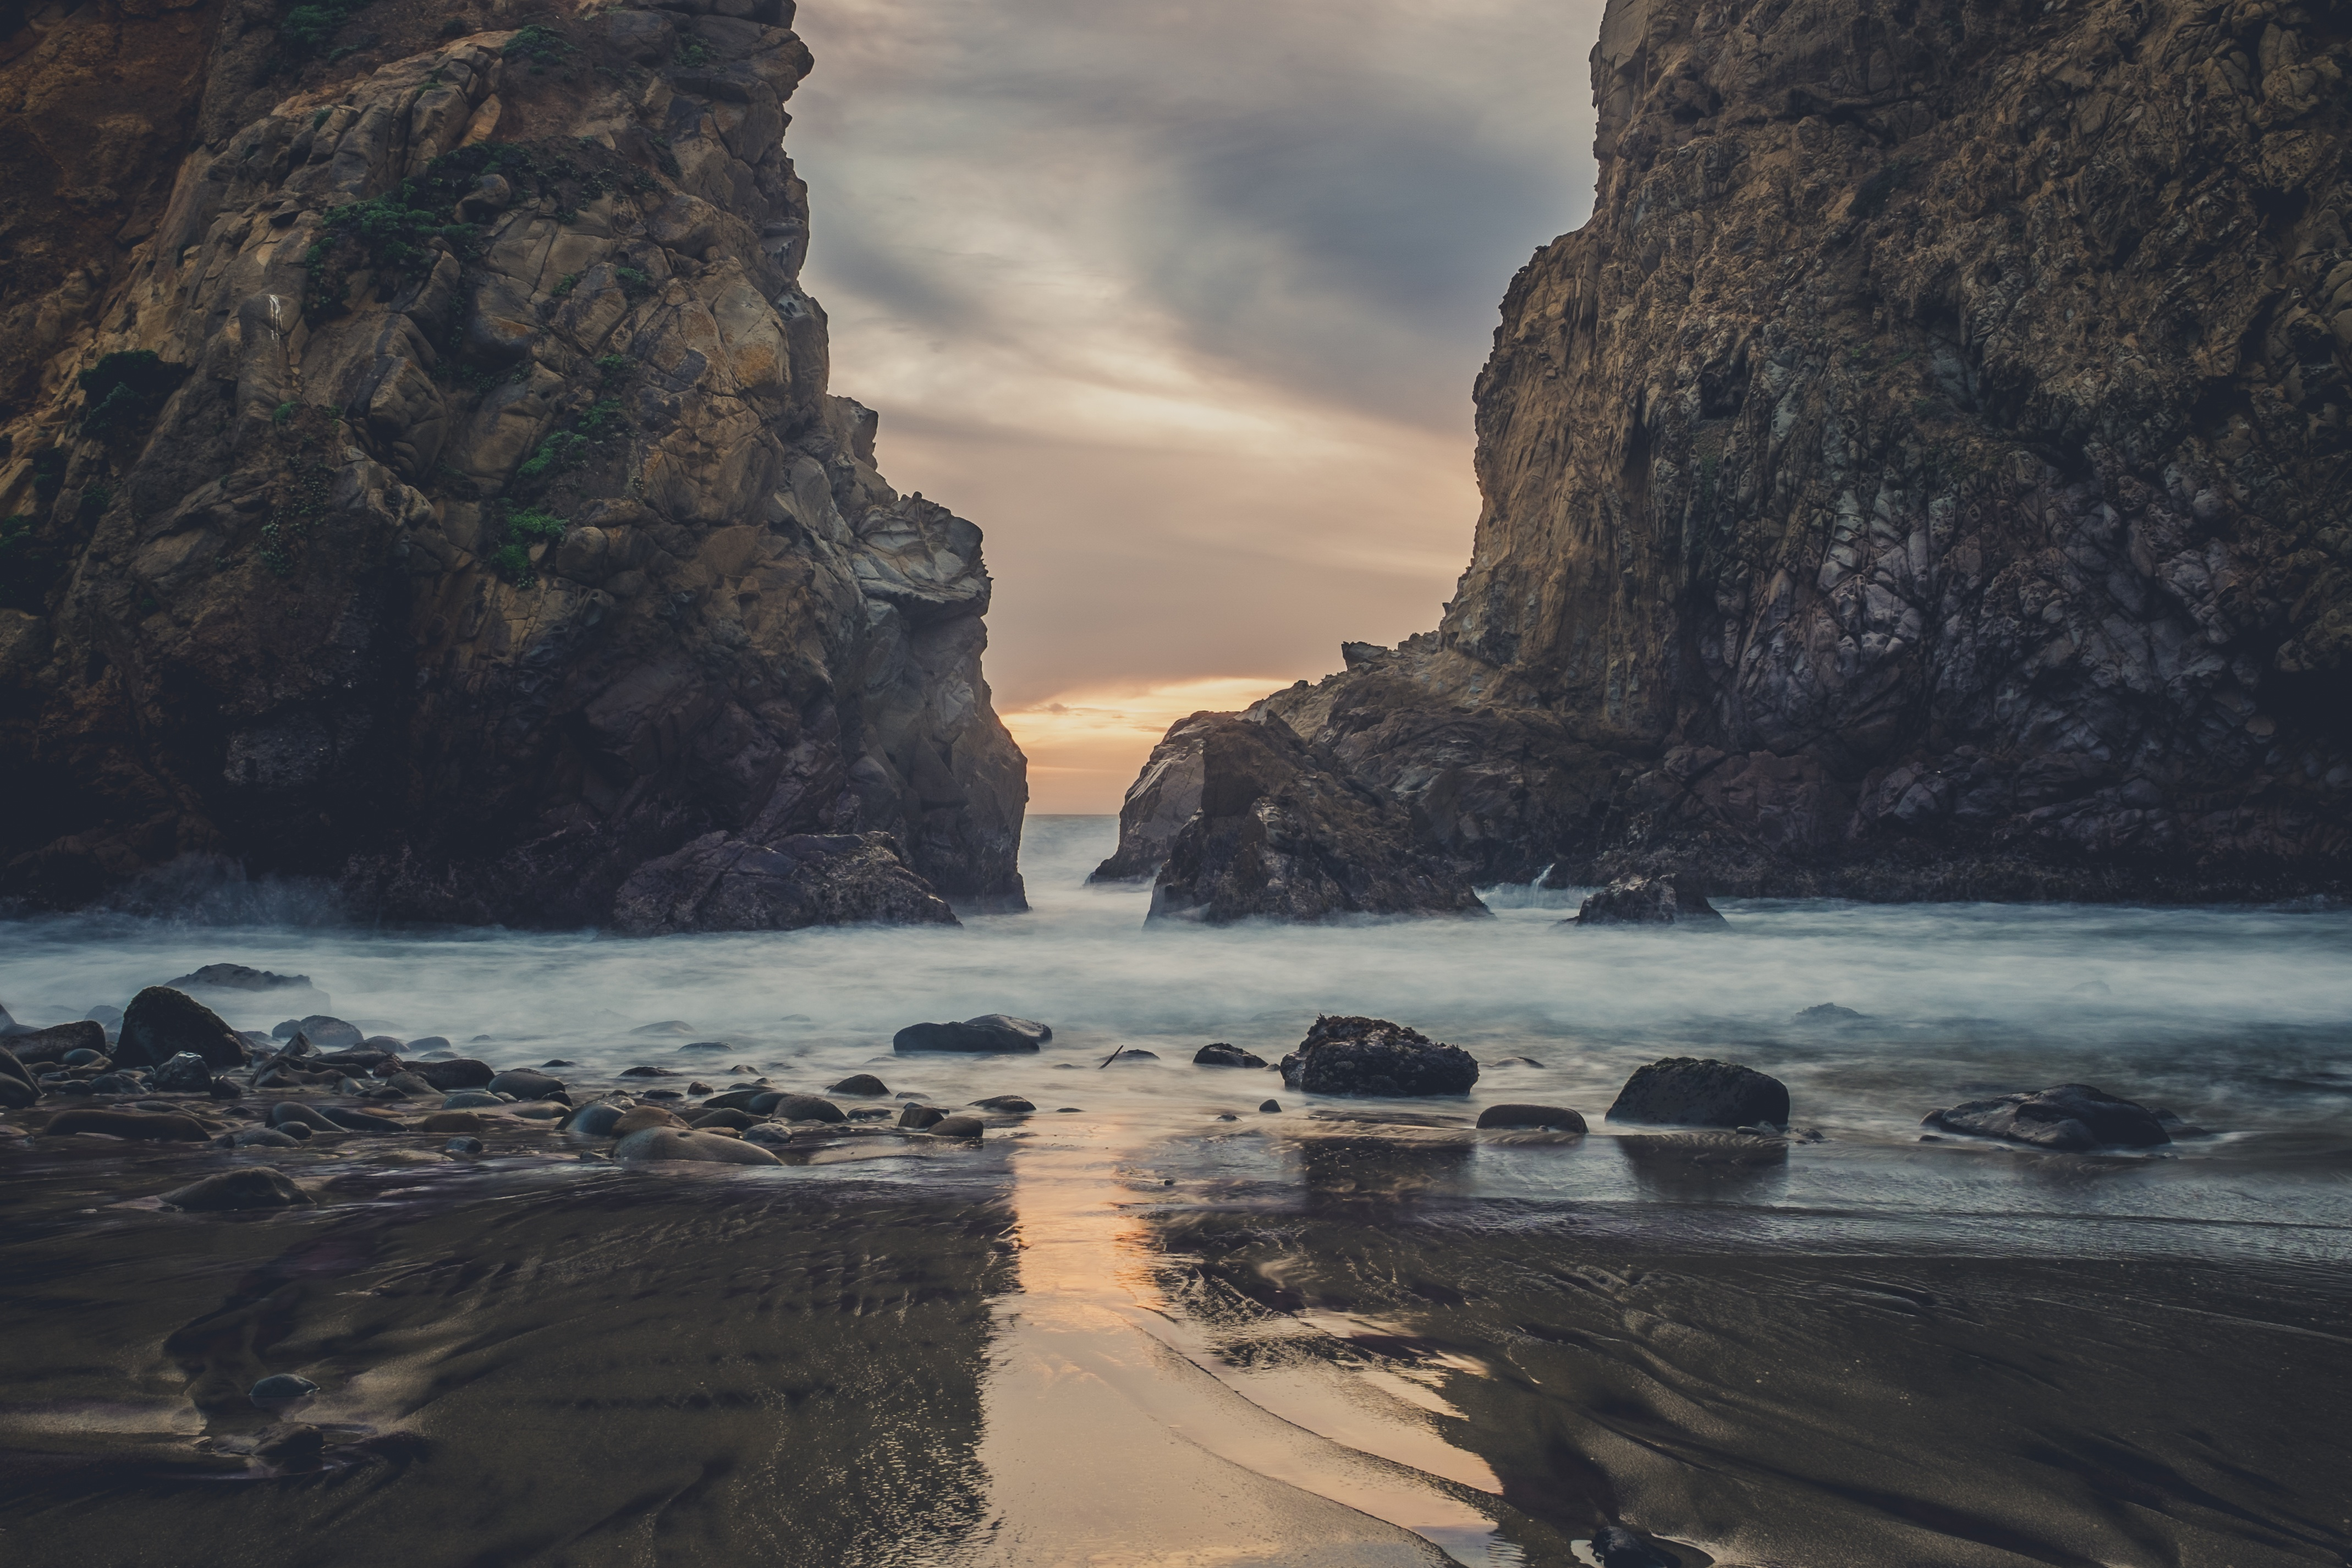 Fall Wallpaper 4d Picalls Com Mountains Rocks On The Beach By Kace Rodriguez